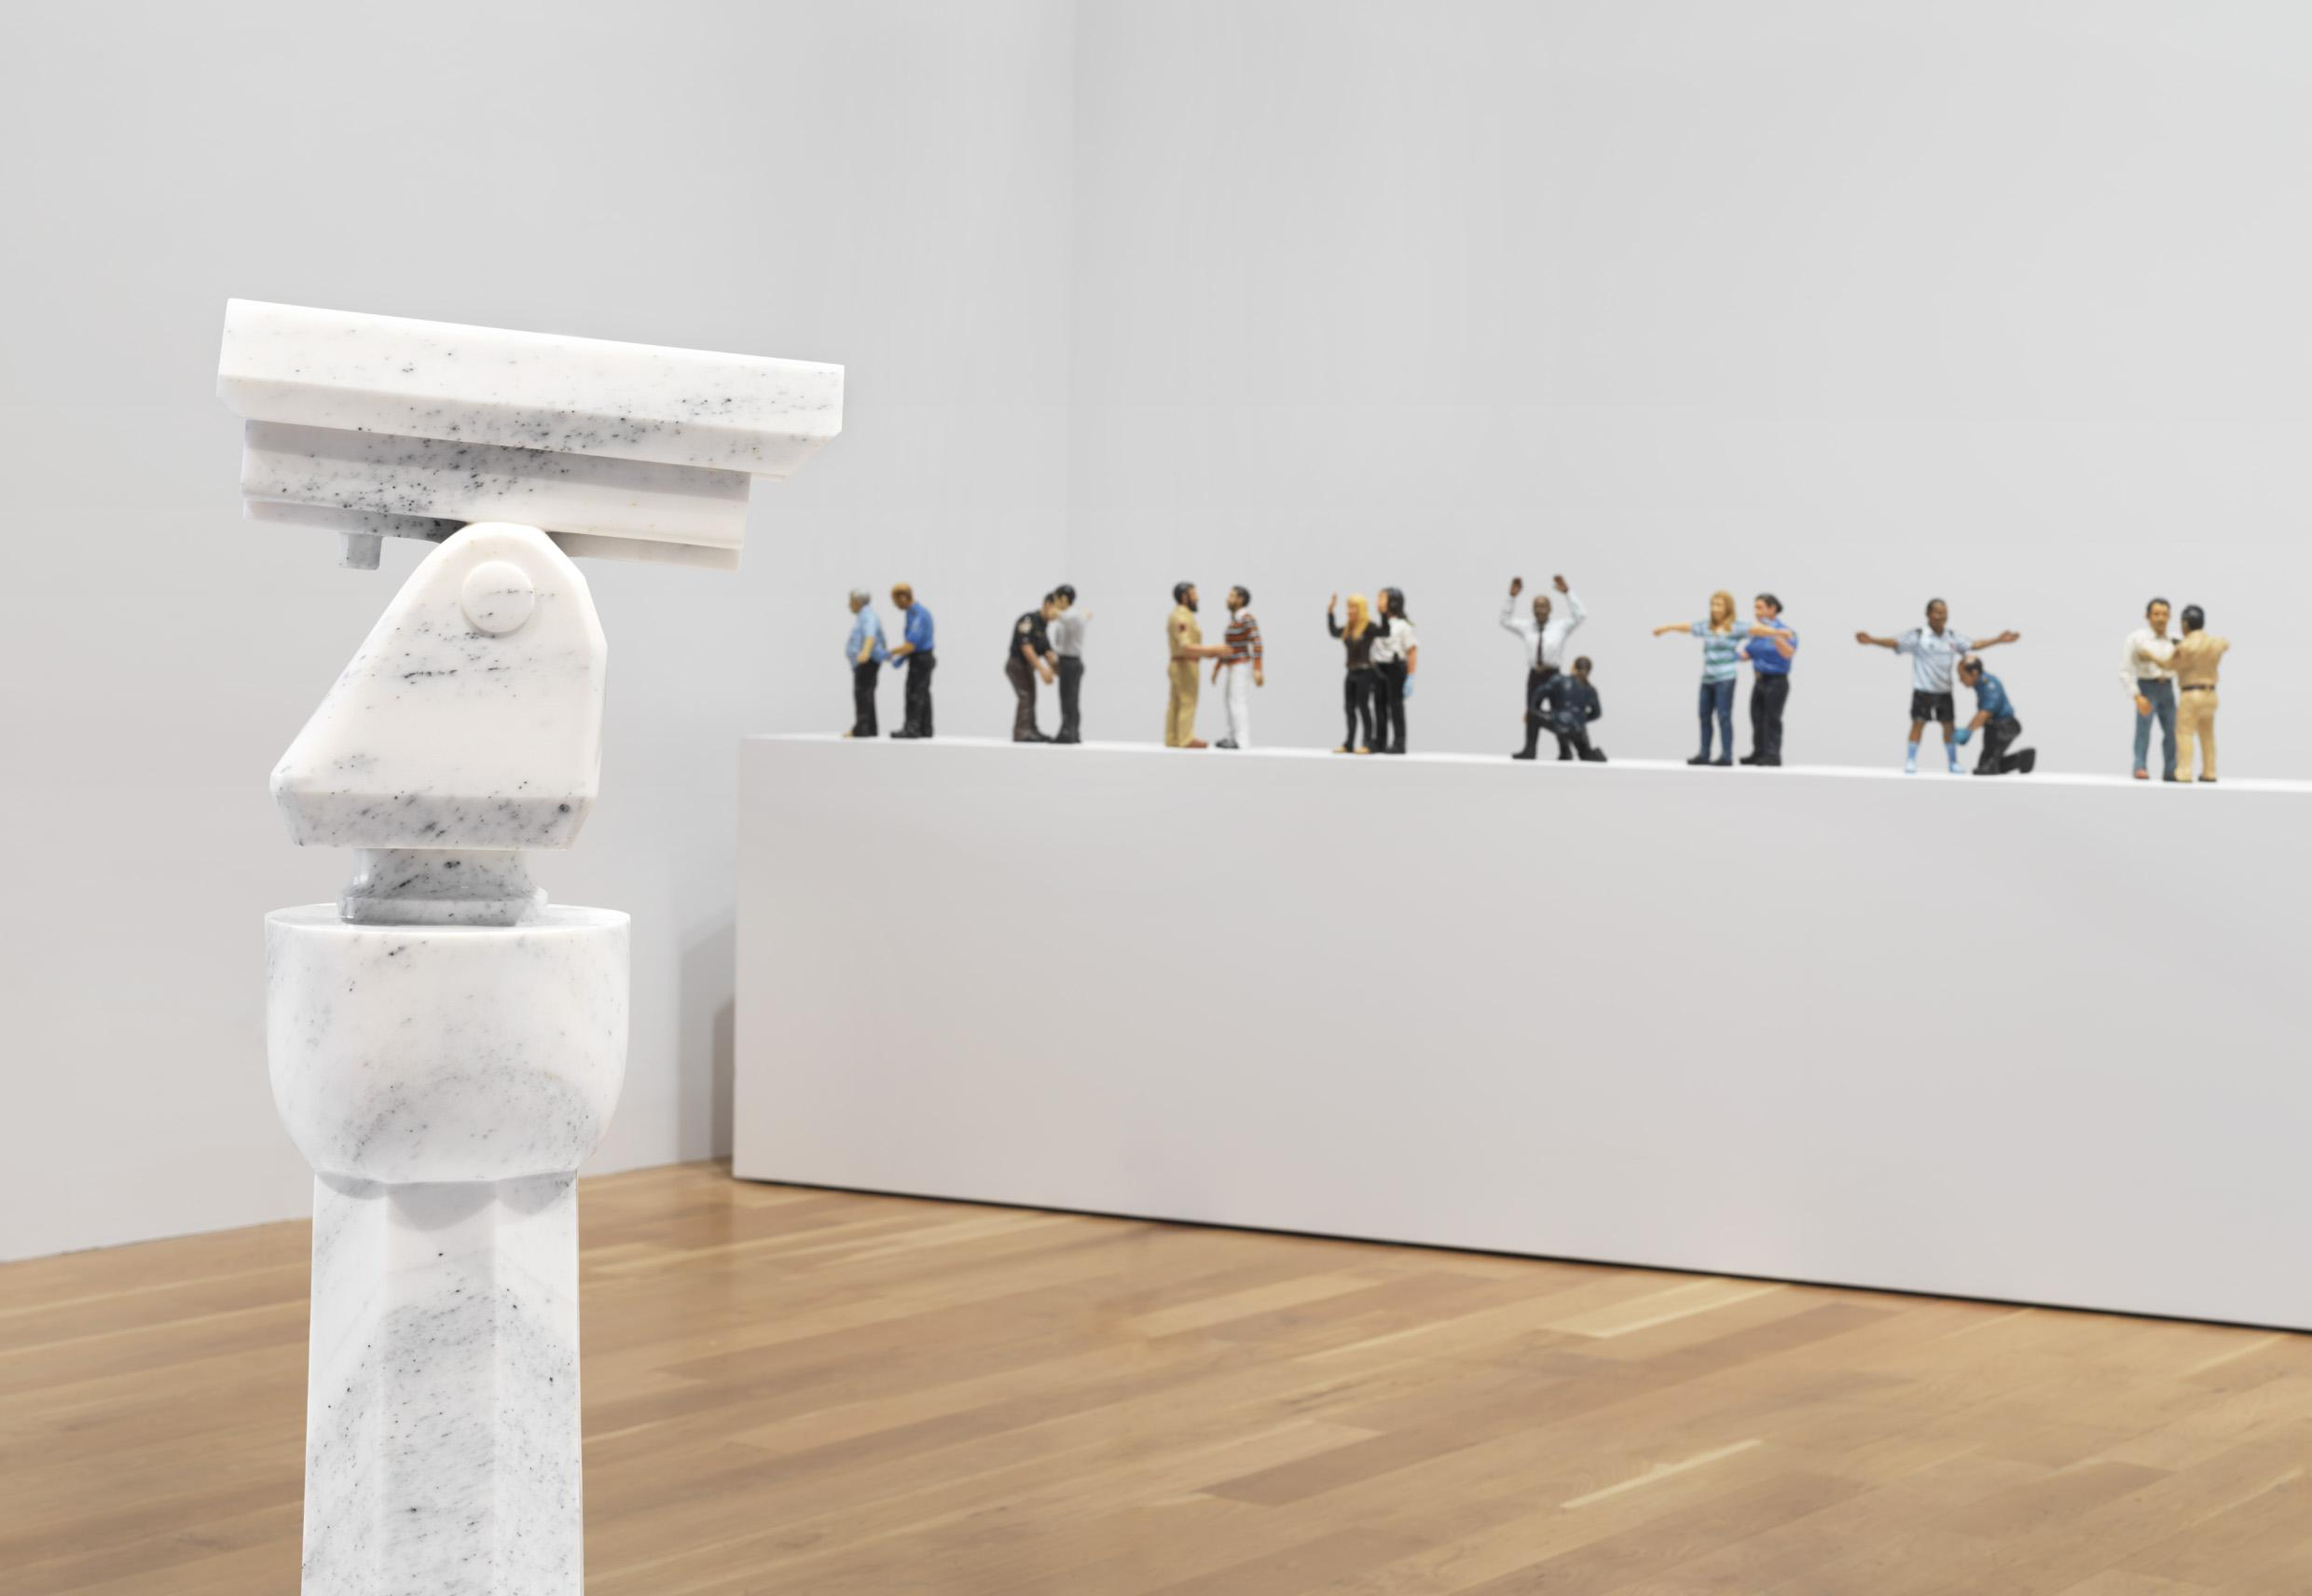 View of gallery showing marble surveillance stand and figures